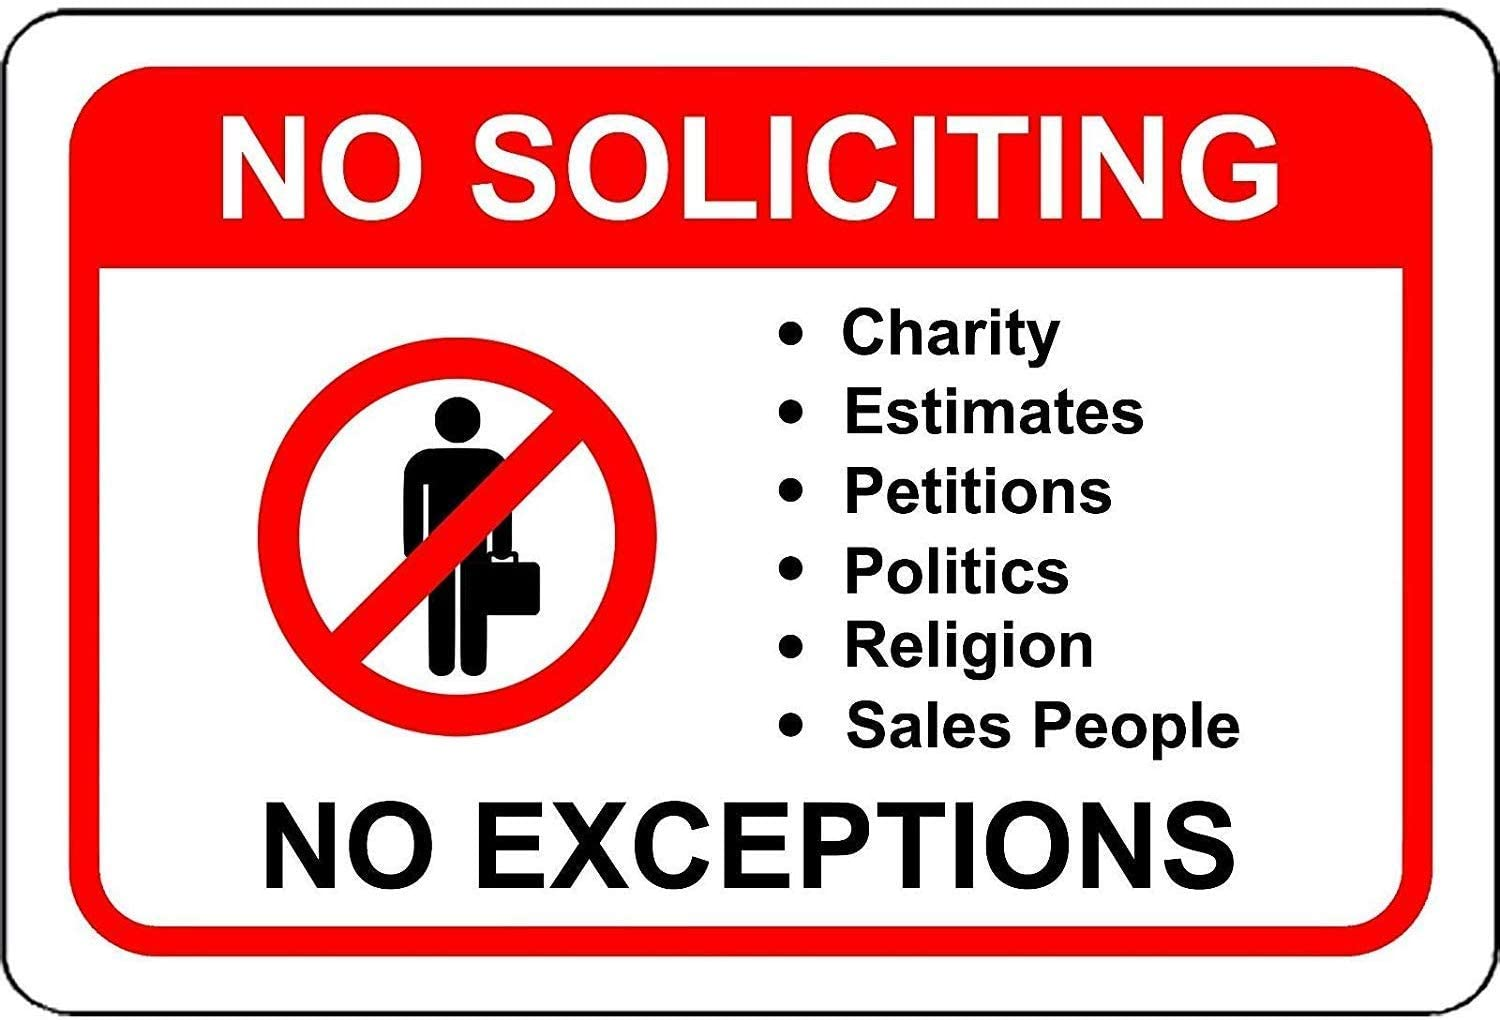 LPLED Wall Decor Sign No Soliciting No Exceptions Will NOT Rust Aluminum Metal Sign 8x12 Inches (W4087)